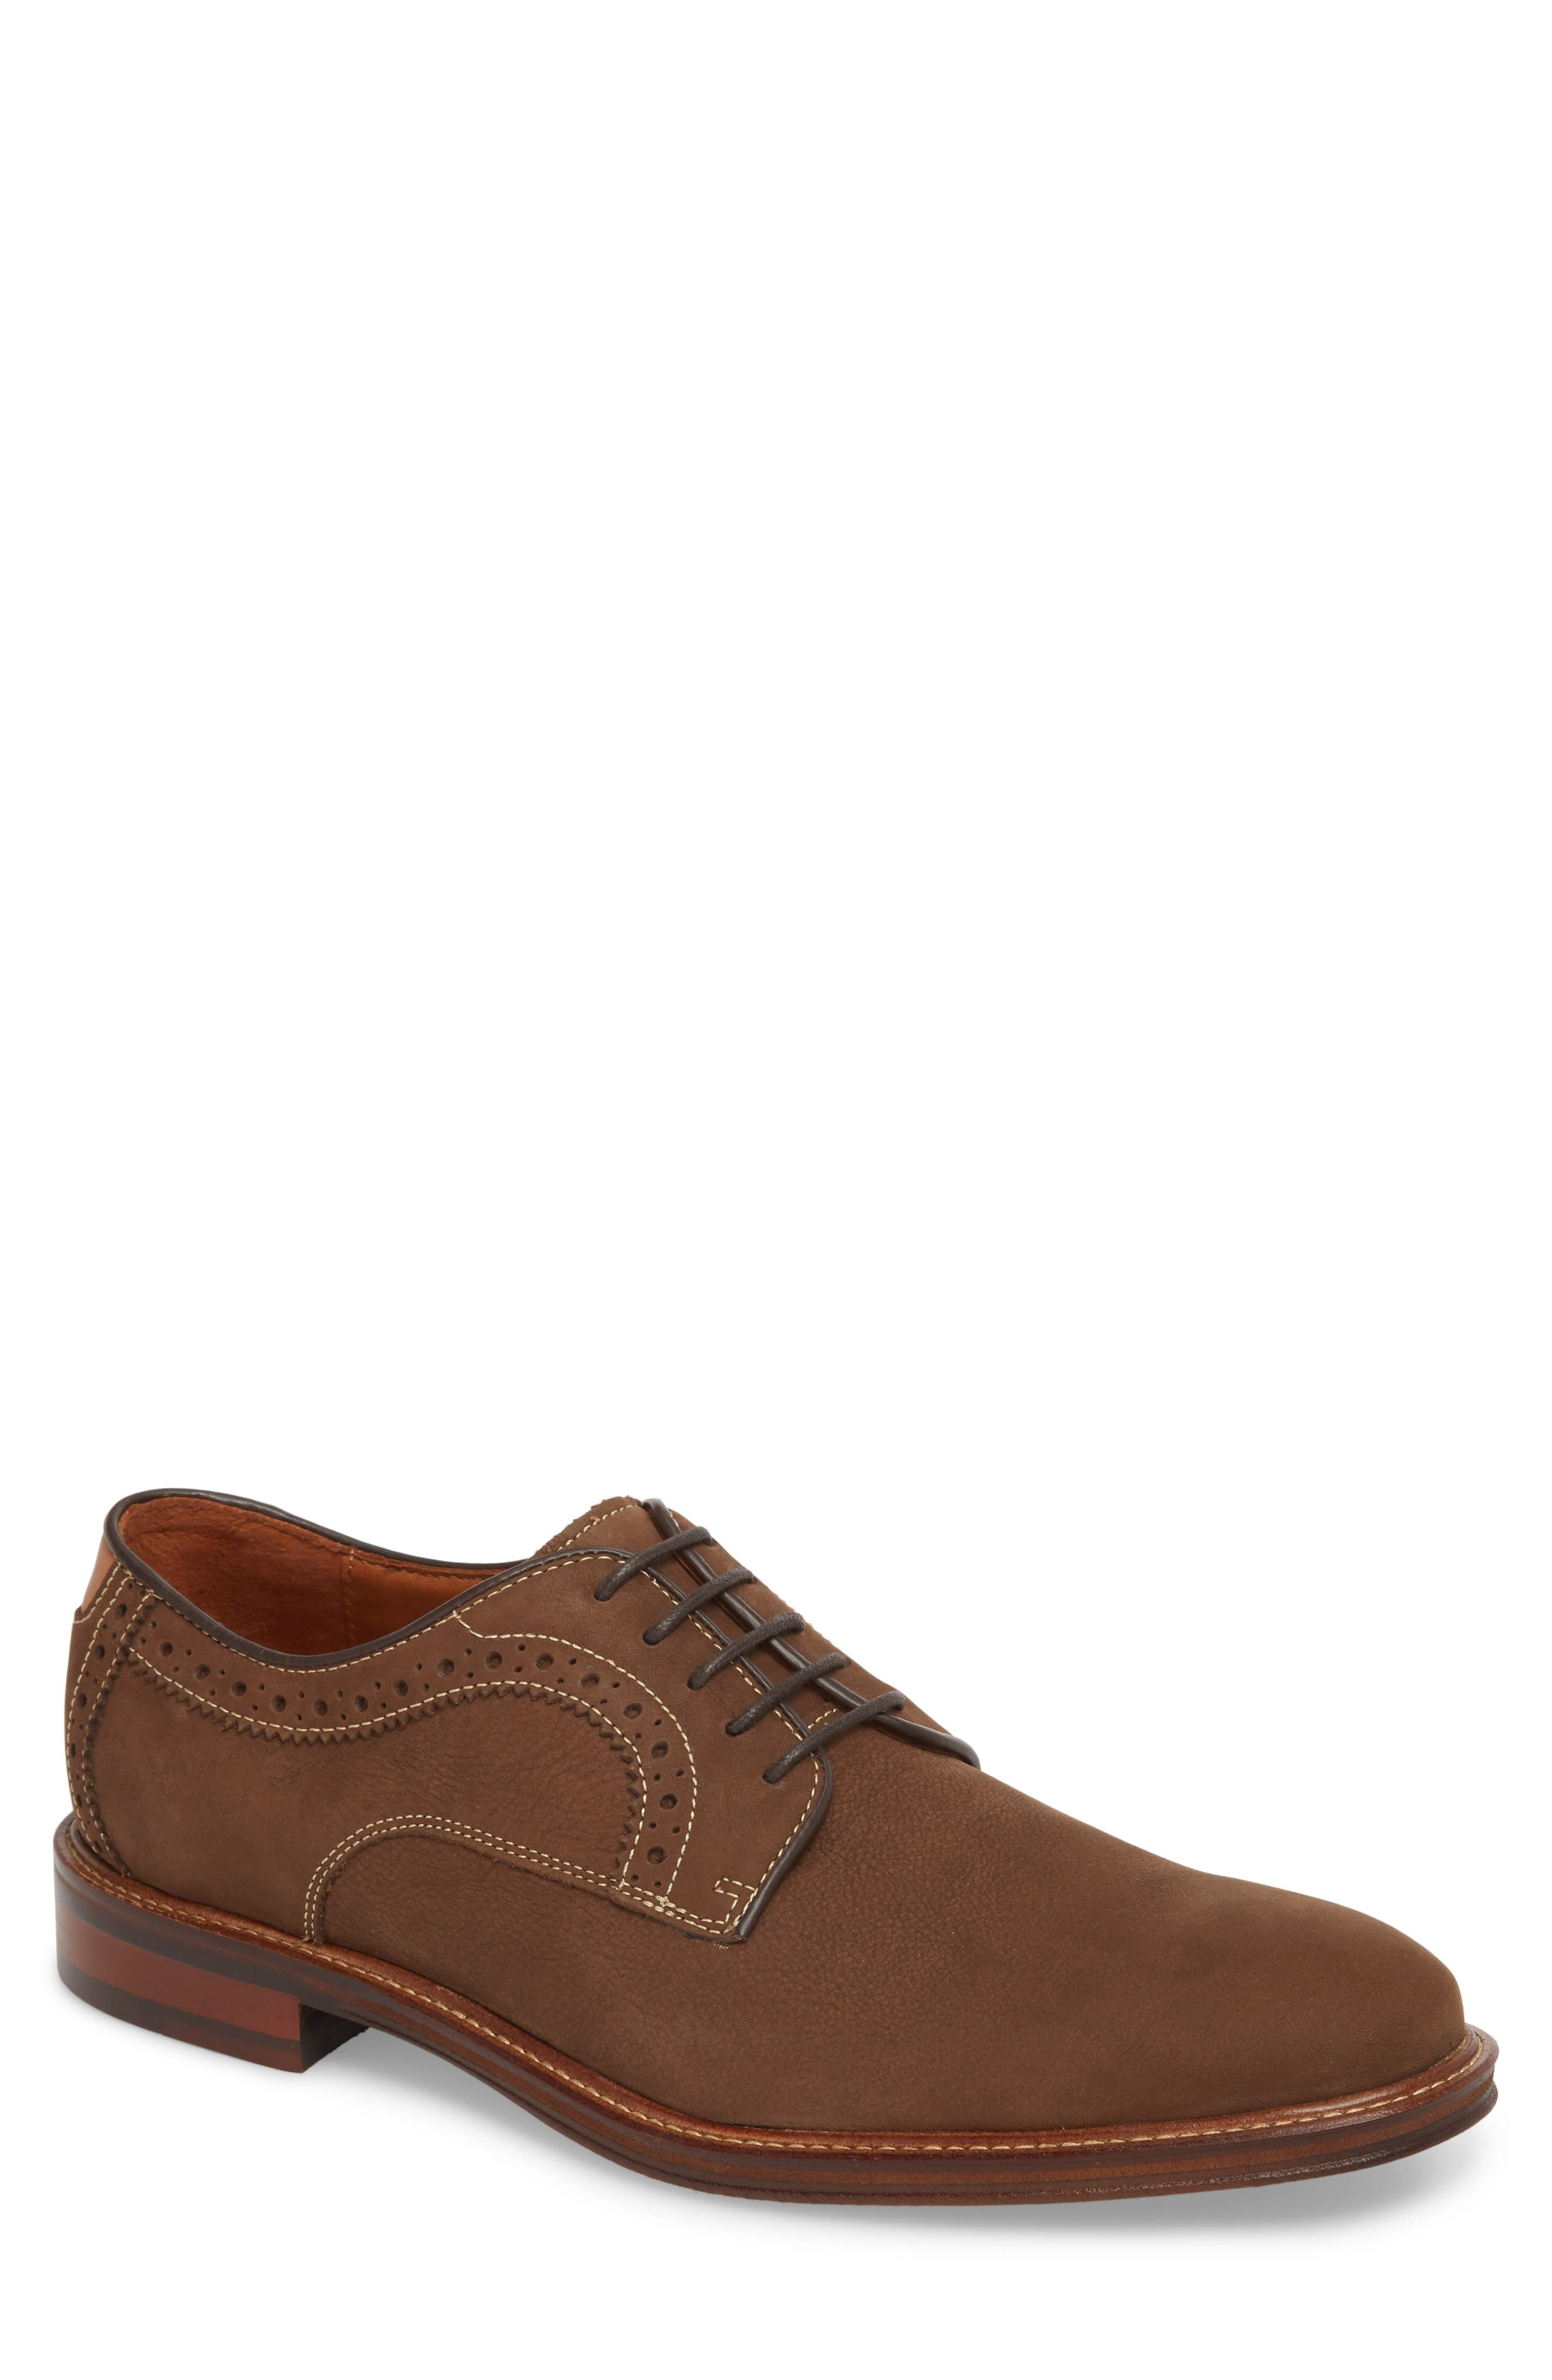 Warner Plain Toe Derby,                         Main,                         color, BROWN NUBUCK